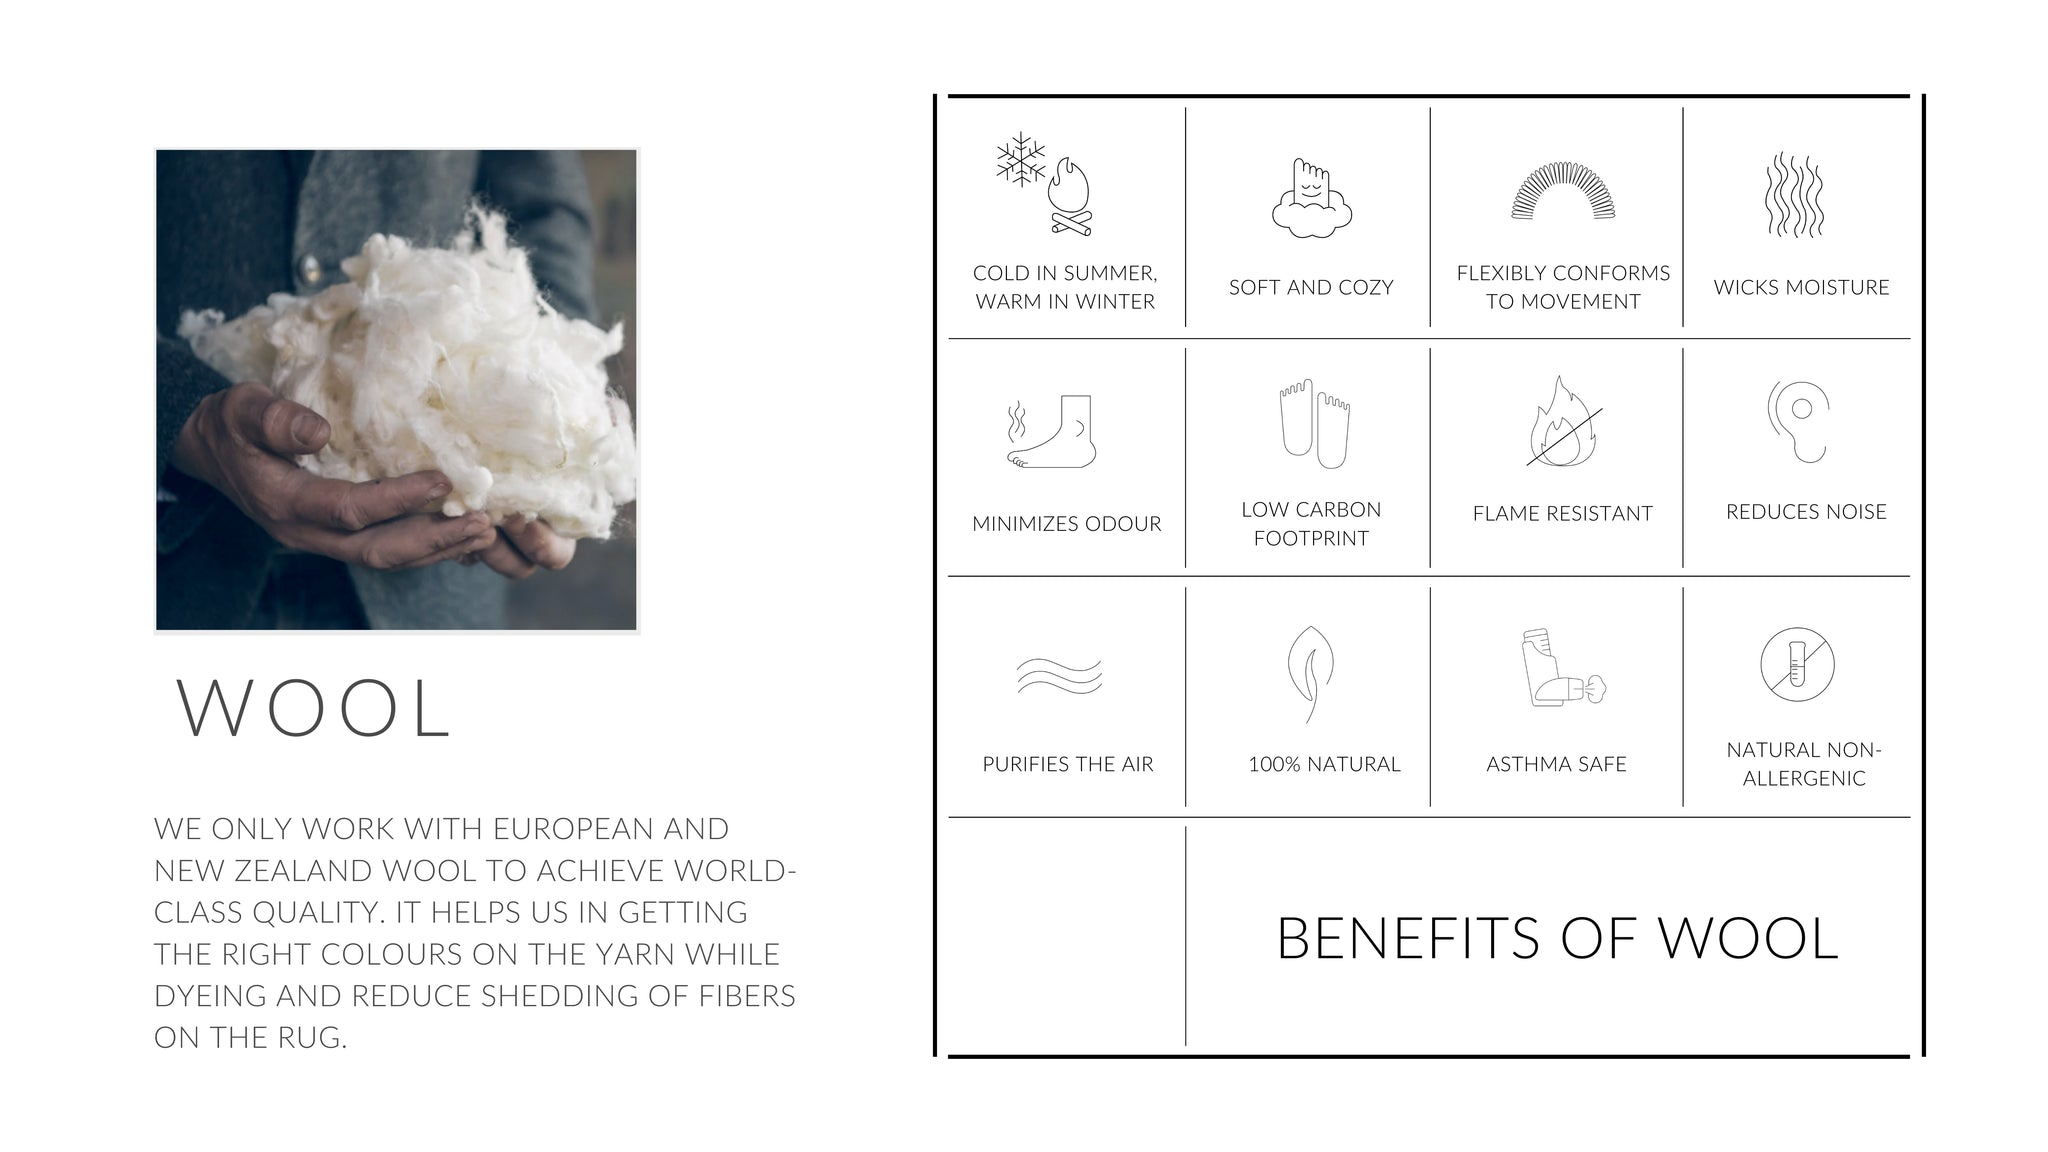 WOOL BENEFITS